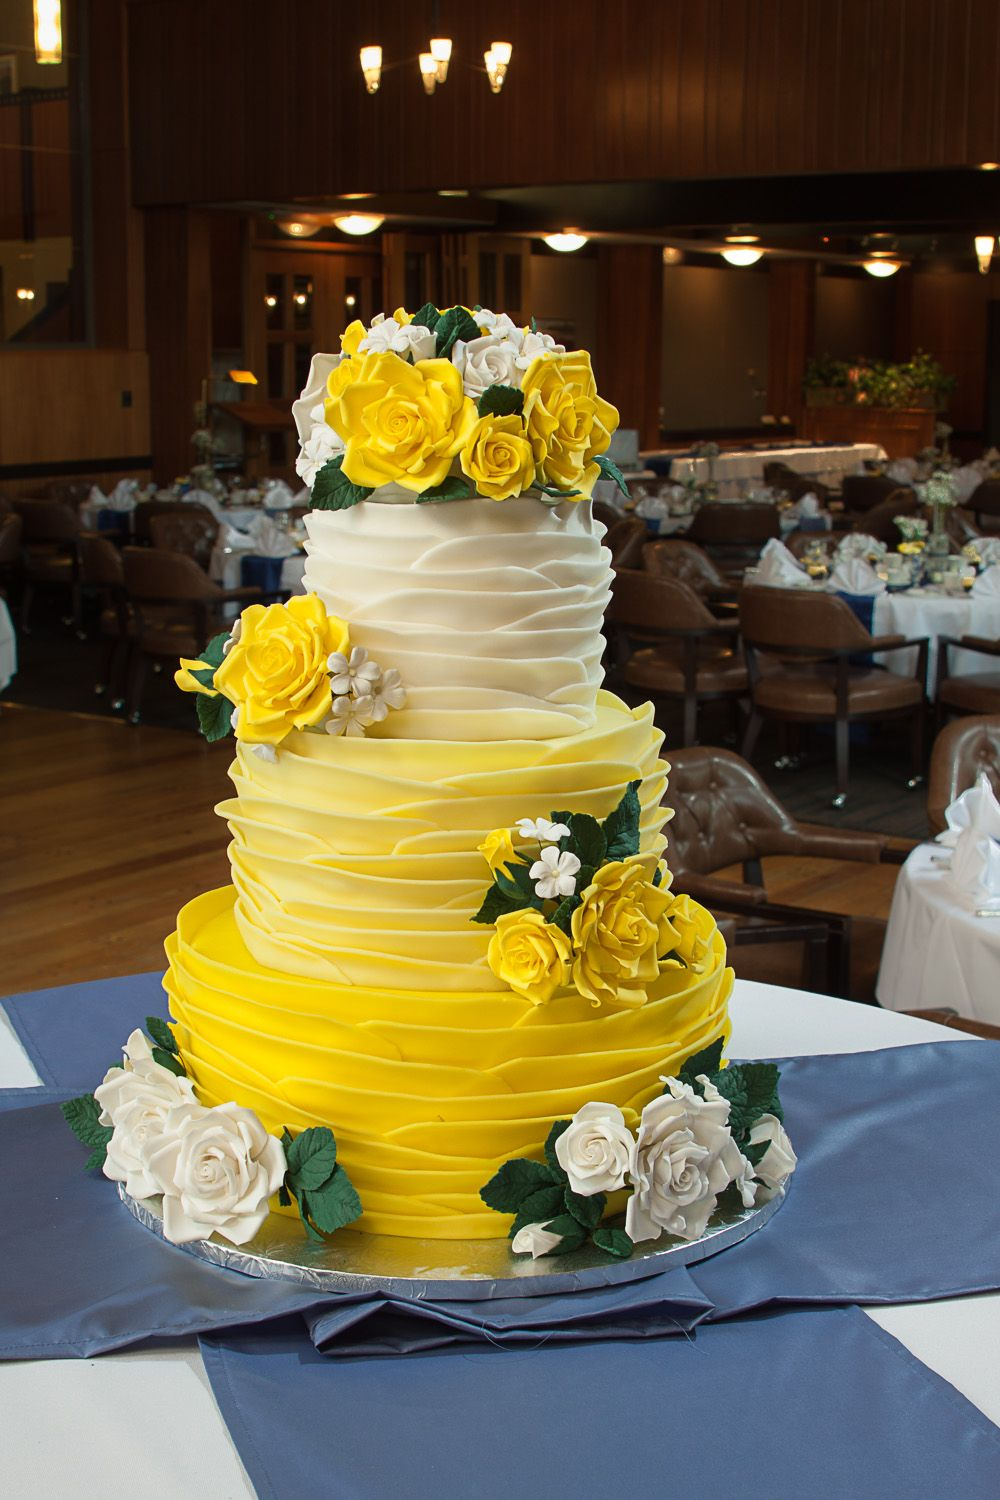 Round Wedding Cakes | Cakes - Tiered & Speciality | Pinterest ...